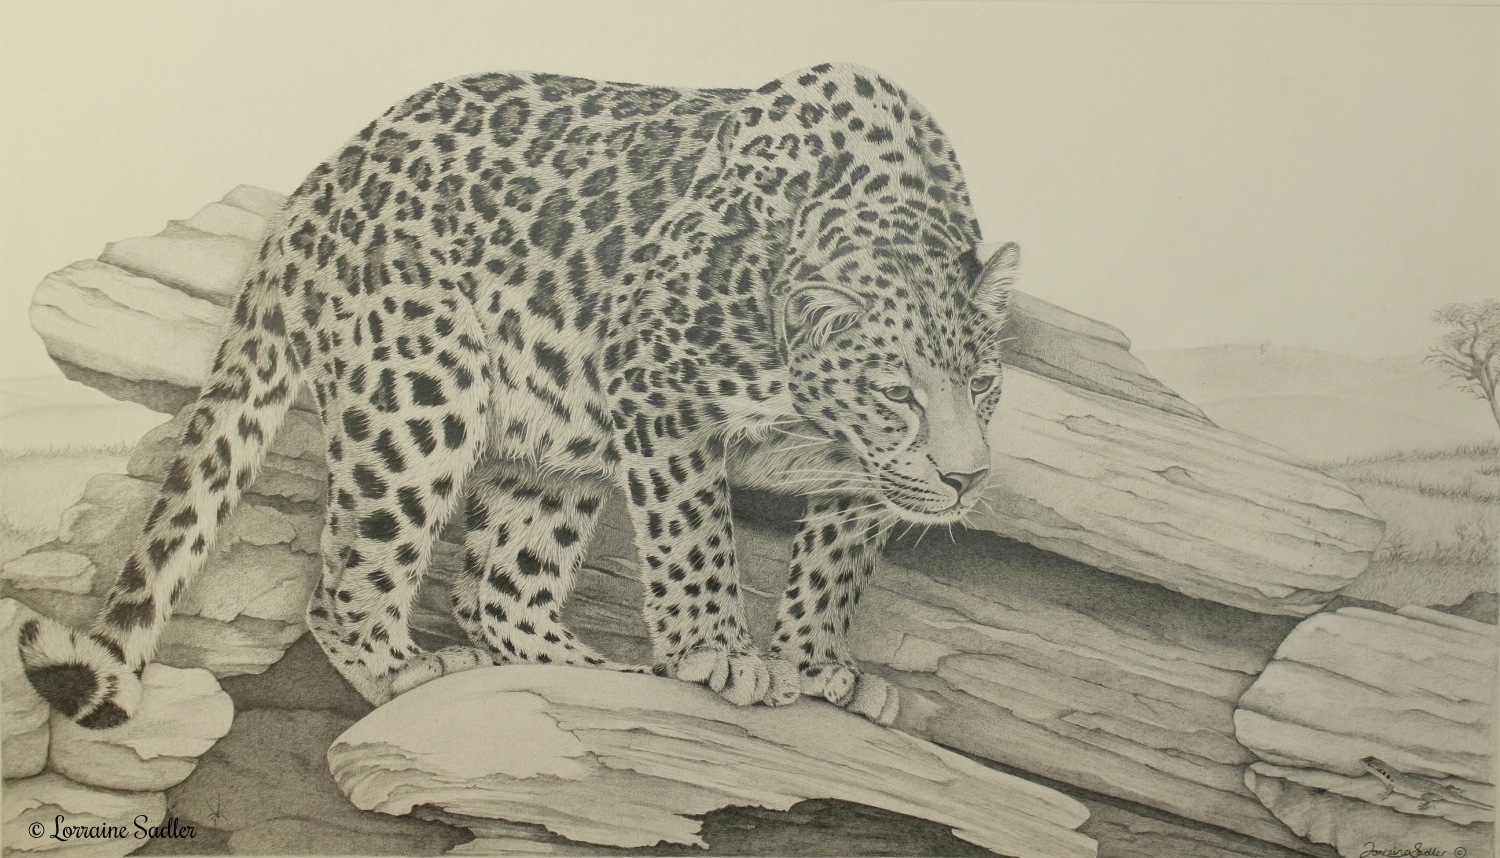 Spotted (21.5 x 12 inches) £1,330